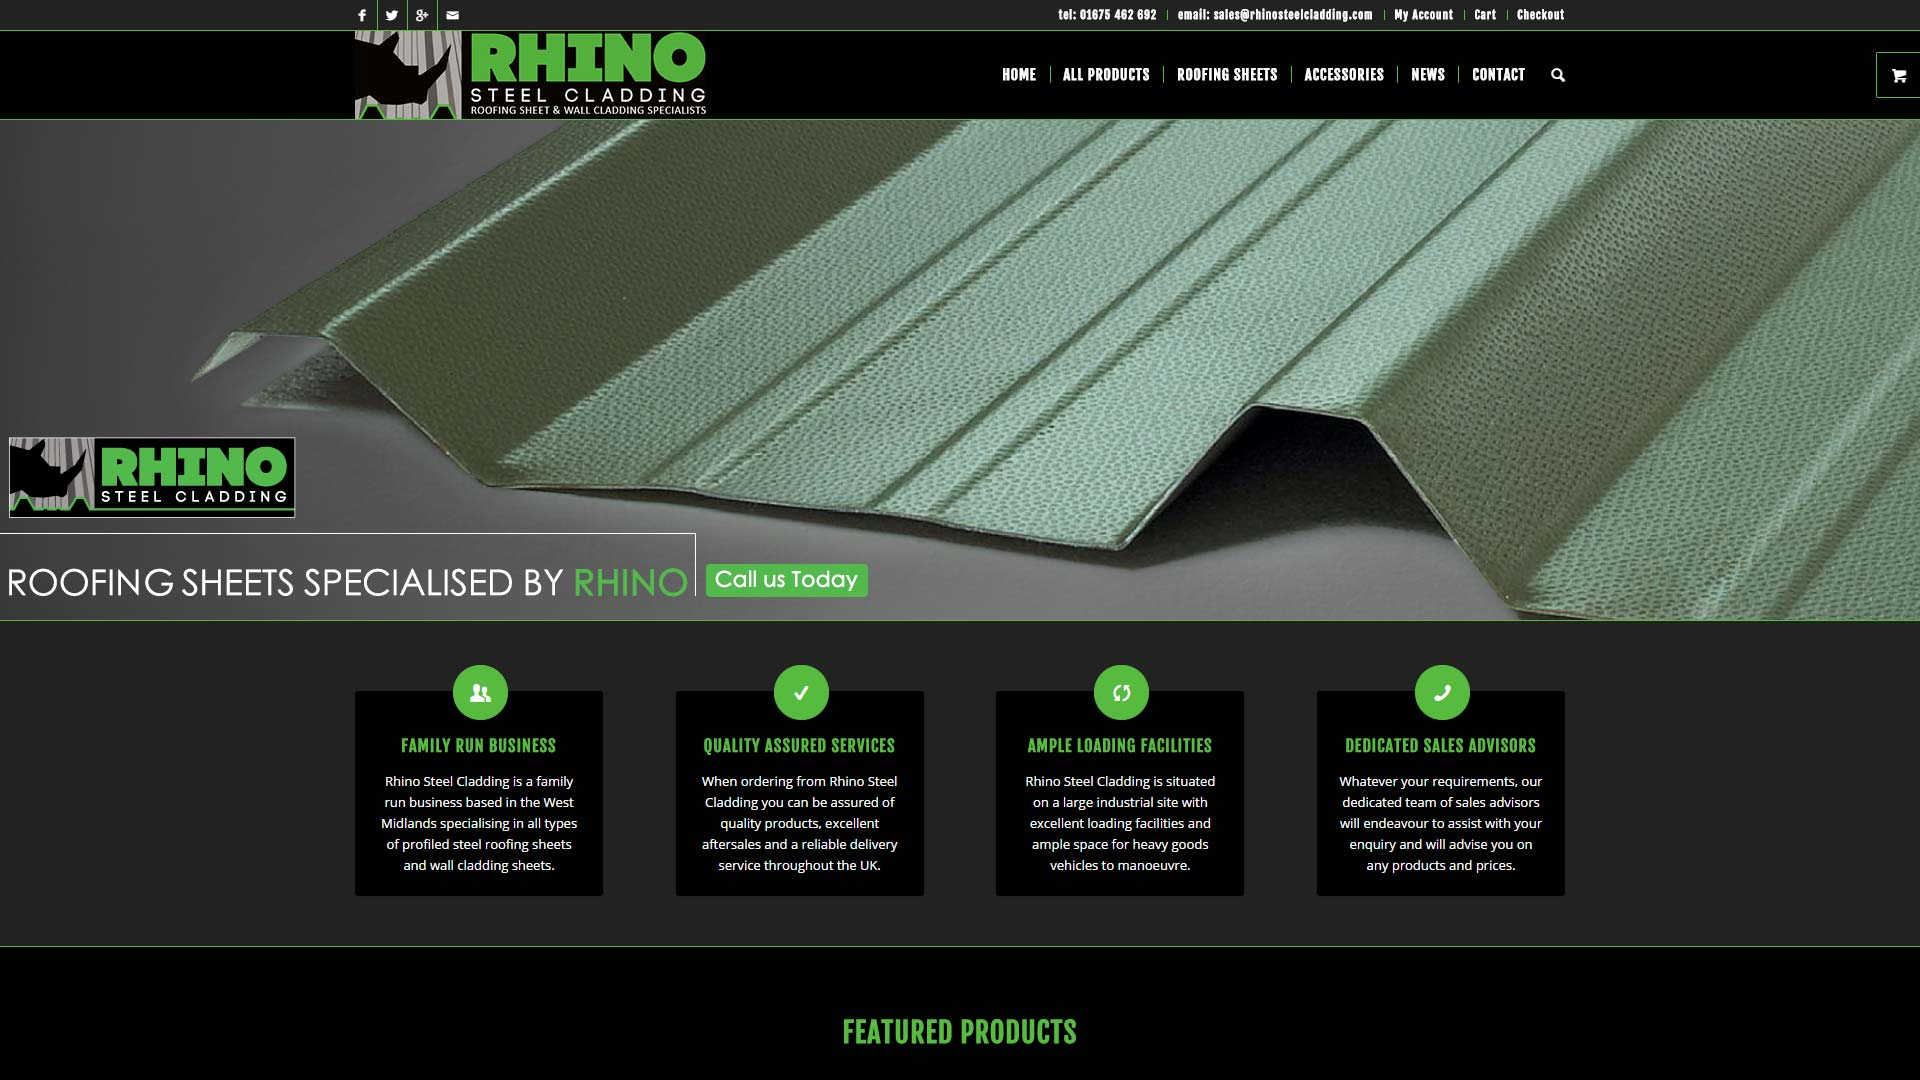 Rhino Steel Cladding